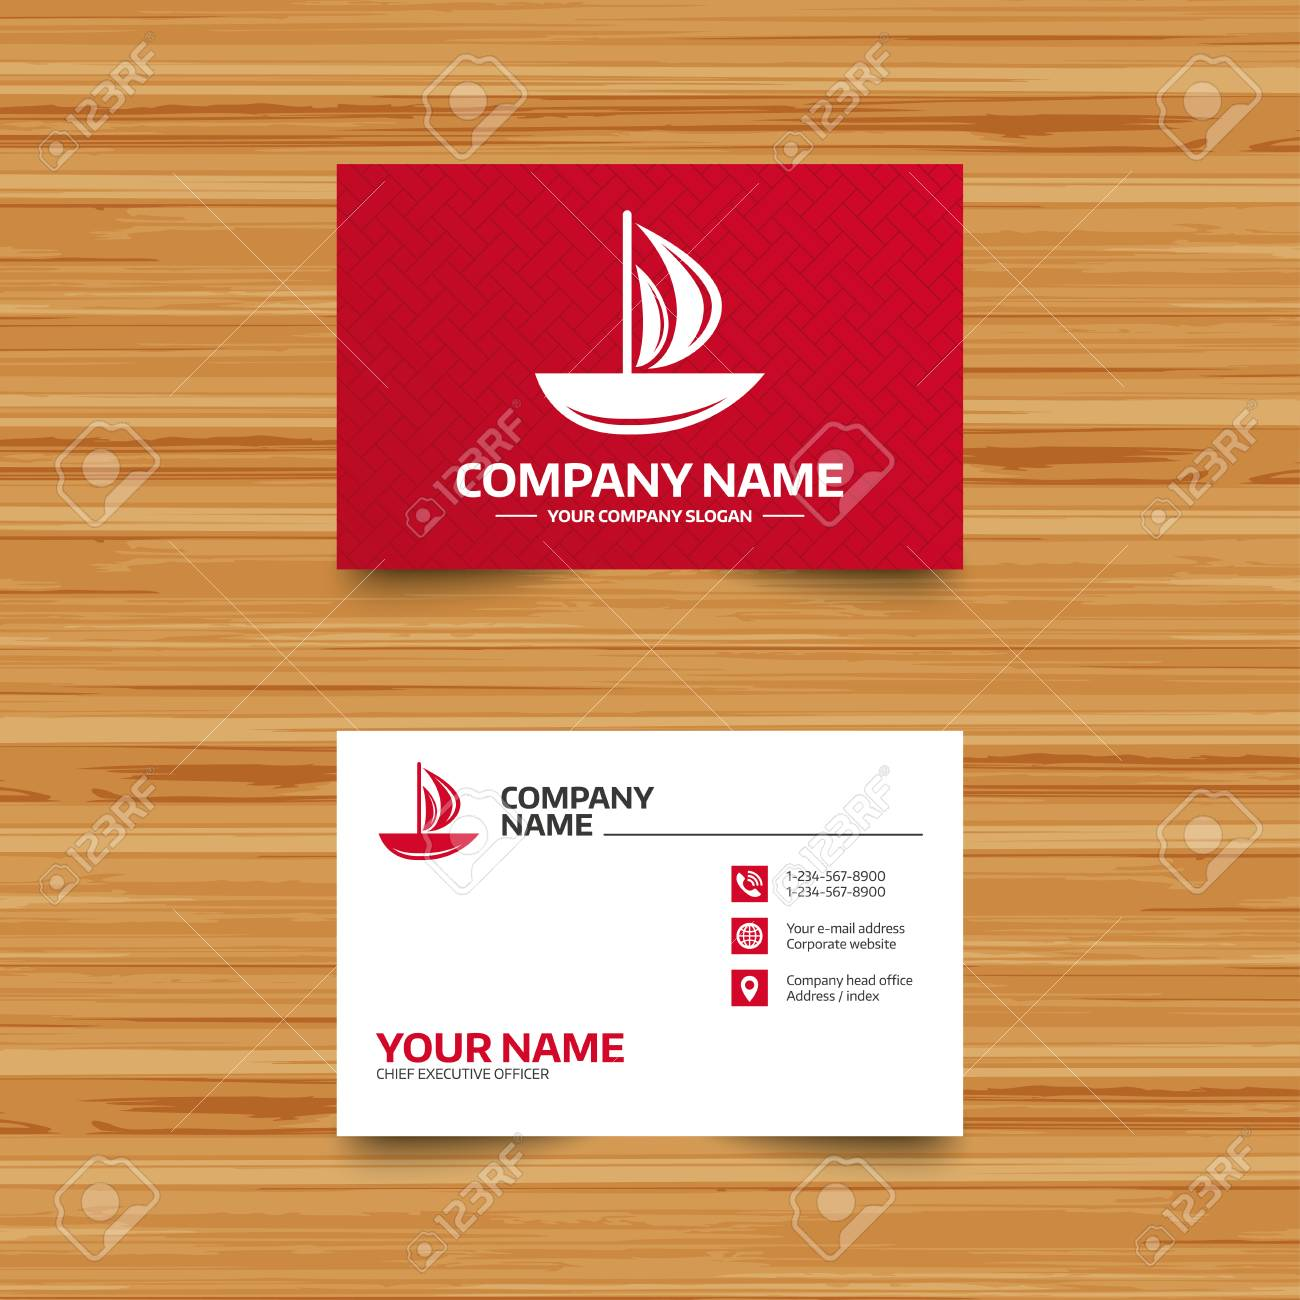 Business card template sail boat icon ship sign shipment delivery business card template sail boat icon ship sign shipment delivery symbol phone reheart Image collections